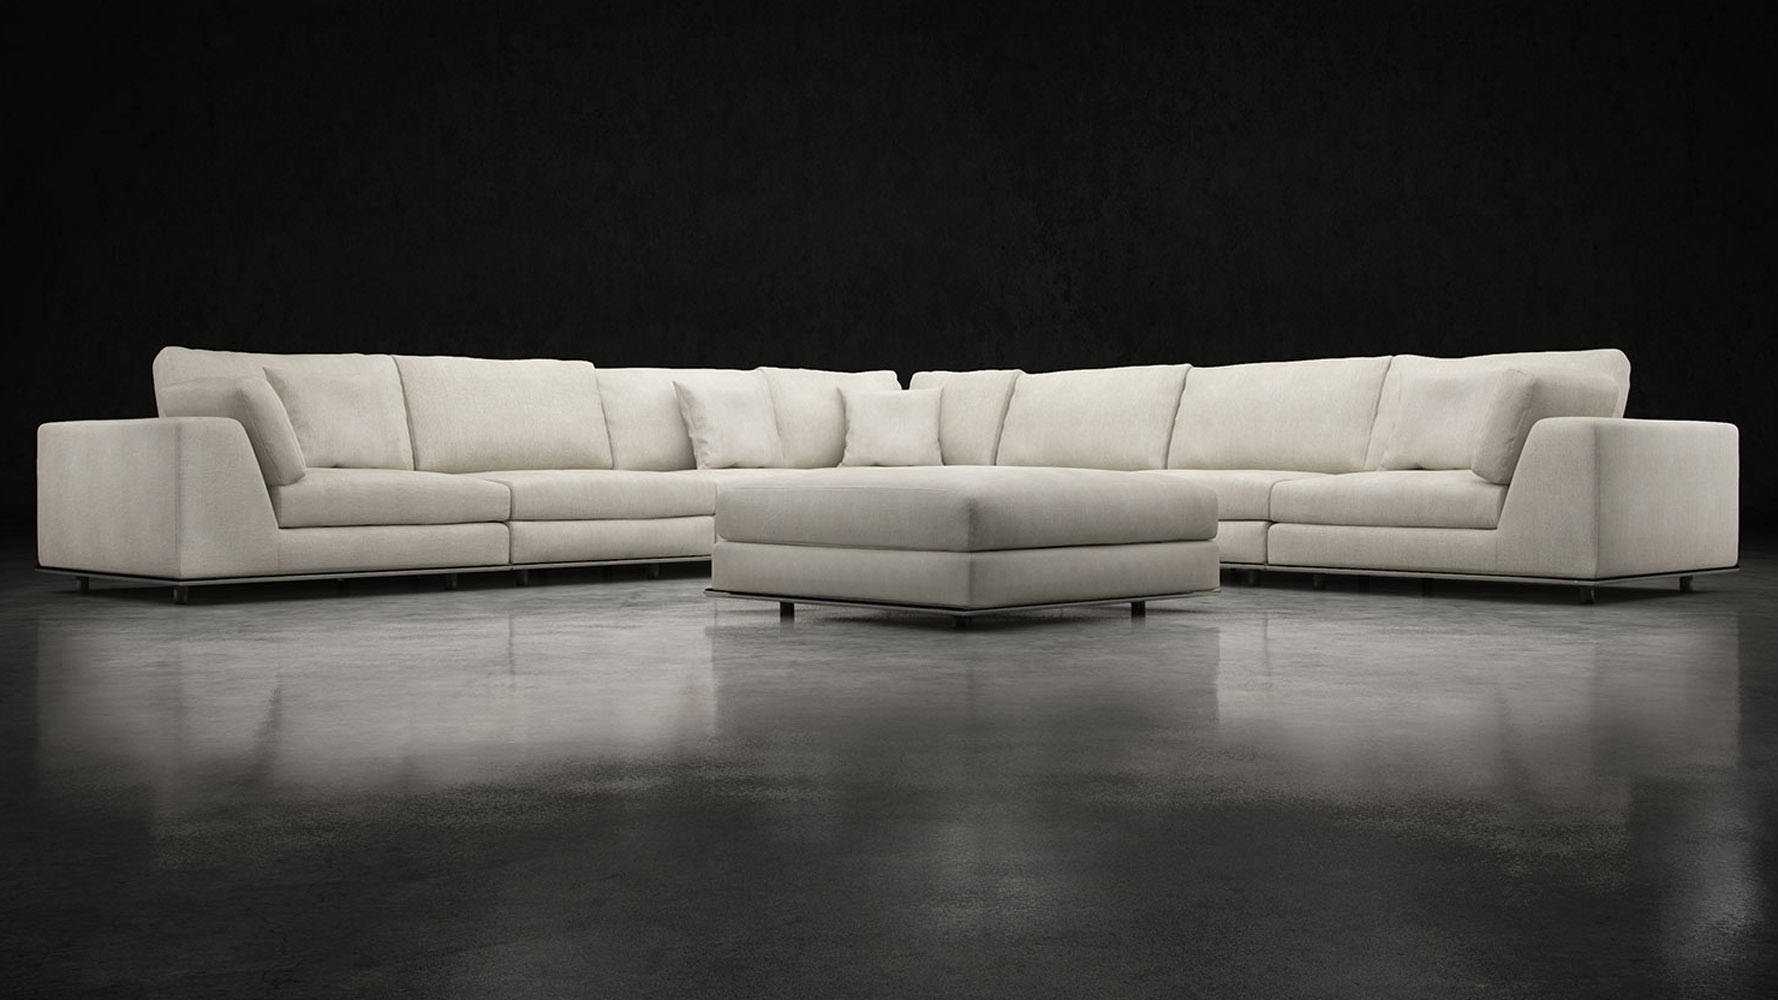 Furniture : 5060 Recliner Sectional Sofa Costco $699 Corner Couch Throughout Joining Hardware Sectional Sofas (Image 4 of 10)